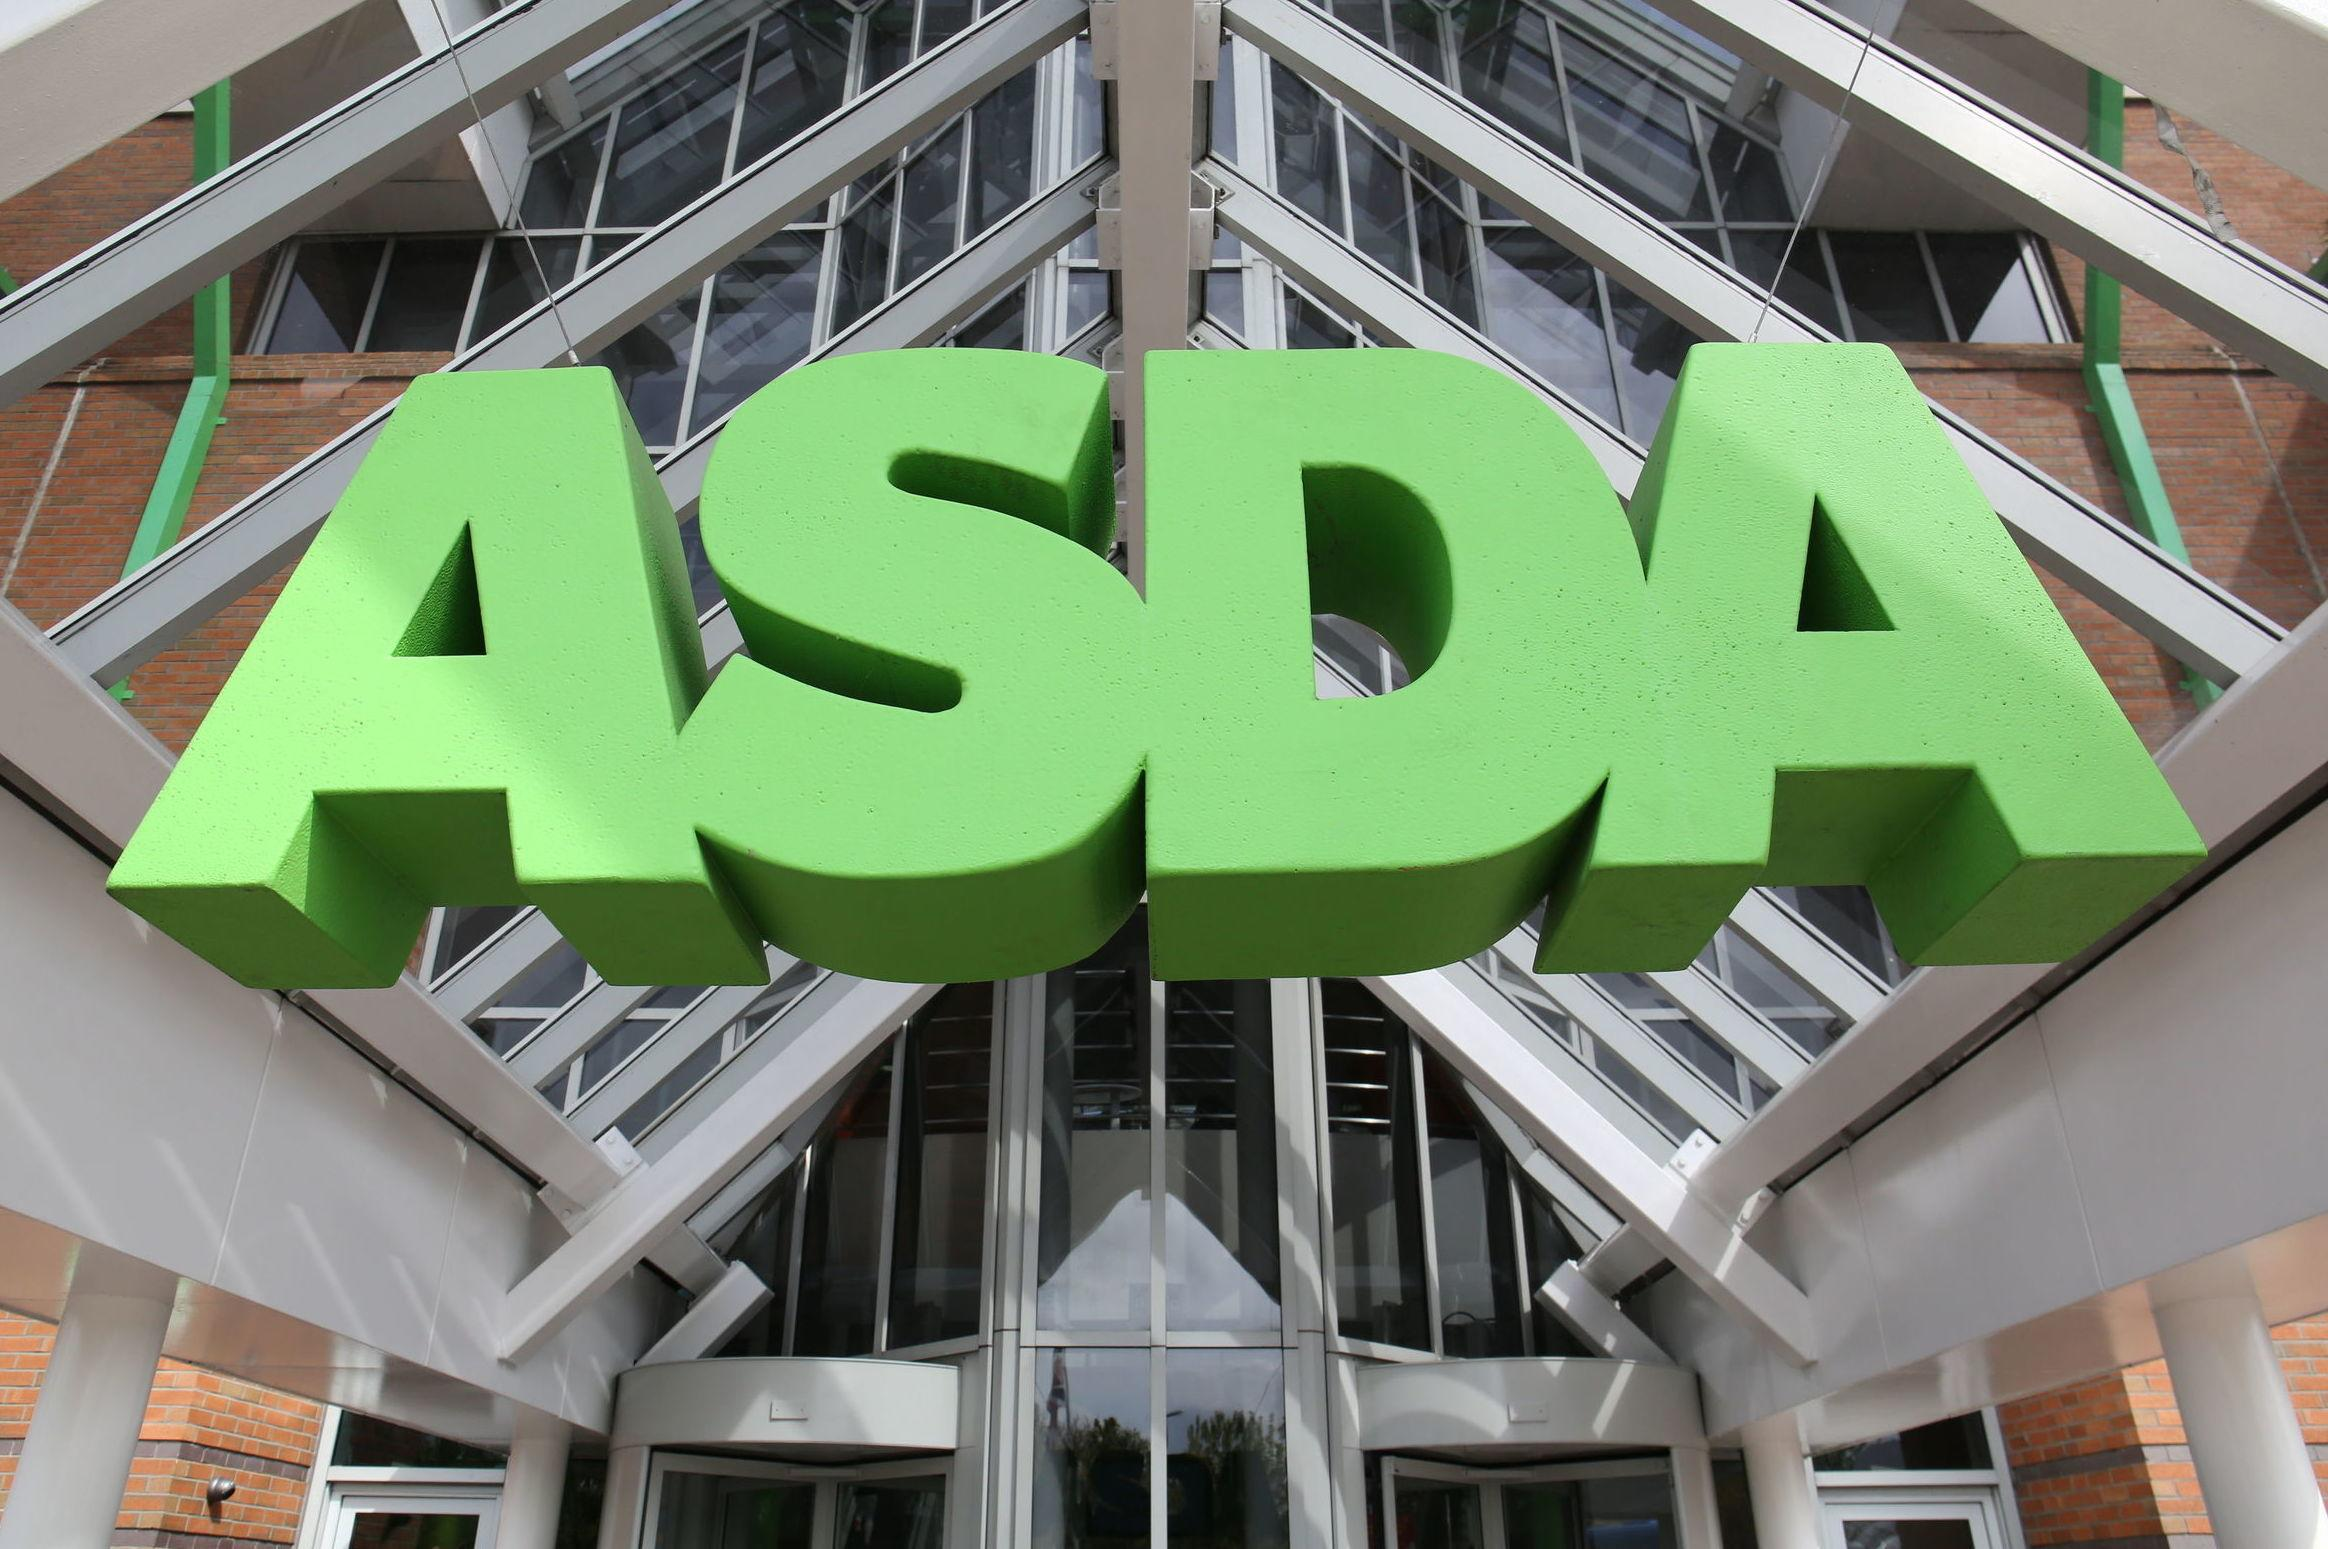 """It's not just individuals who can be the victims of scams, big corporations can also fall foul of these fraudulent practices. In 2015 Claire Dunleavy repeatedly used a 7p 'reduced' sticker to get significant amounts of money off her shopping at an Asda store in Burslem, ending up with her paying just £15.66 for a shop that should have cost £69.02. Read the full story <a href=""""http://money.aol.co.uk/2015/06/24/fraudster-tricked-tills-with-discount-sticker/"""">here</a>."""